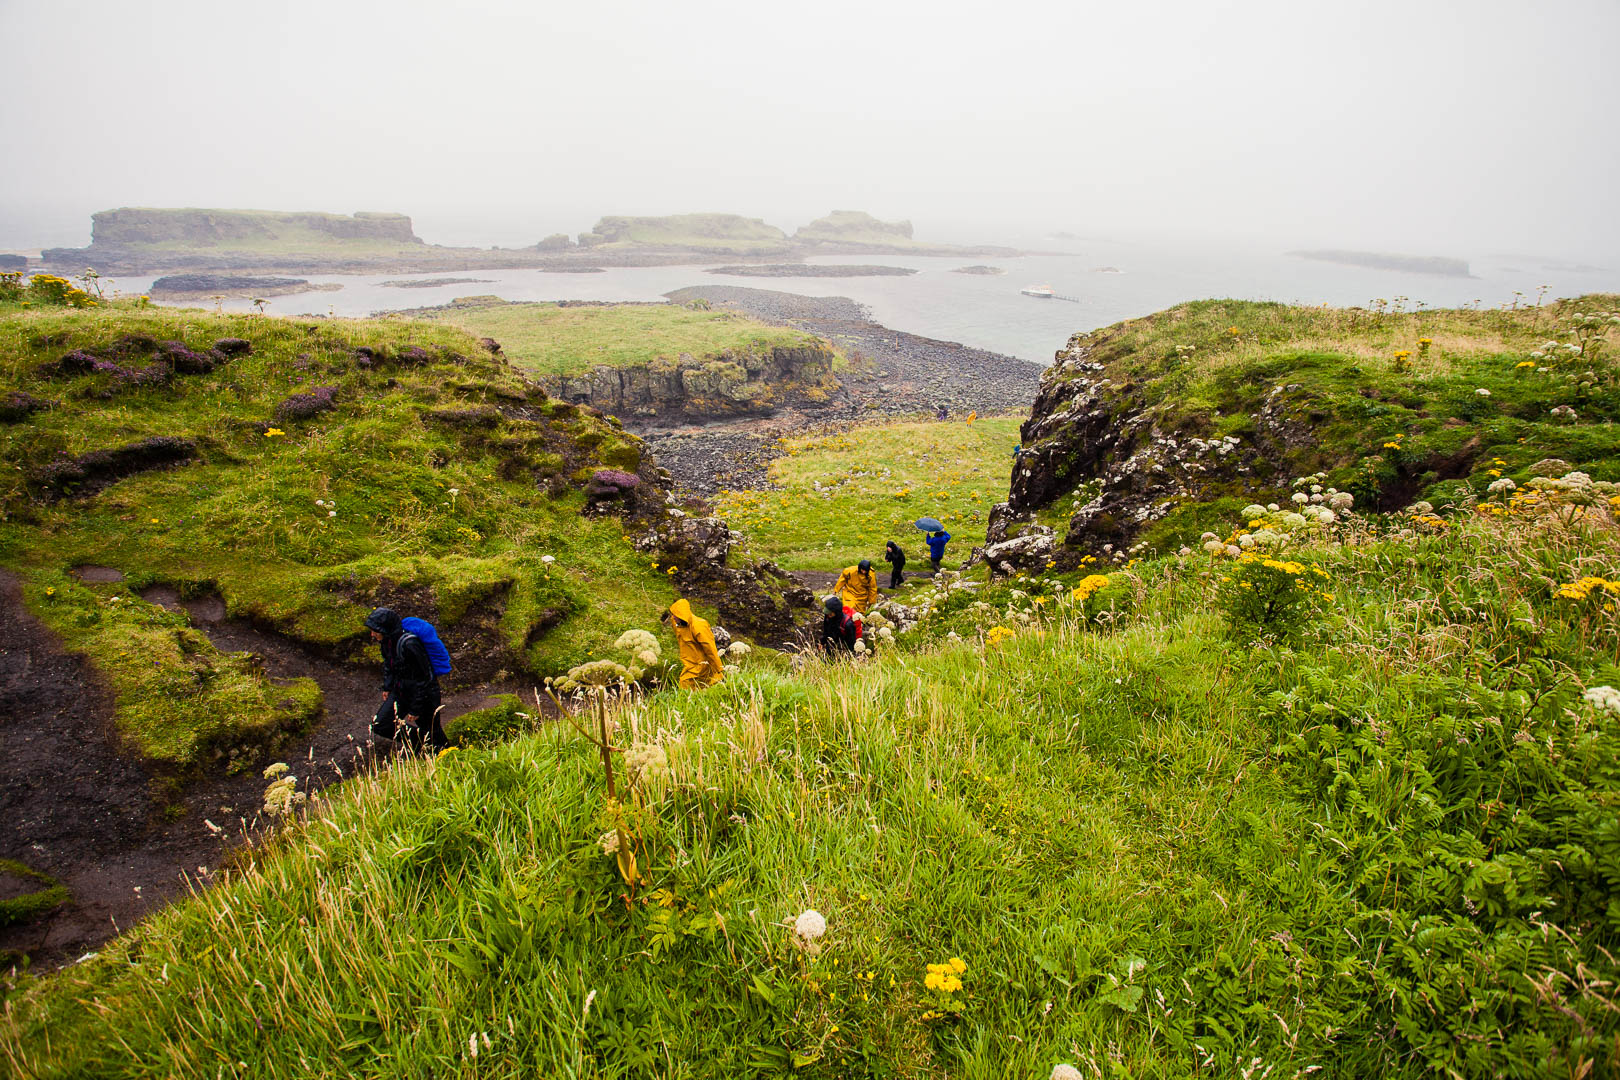 A group of people in yellow and dark rain jackets are walking on a trail on a green island in the rain.